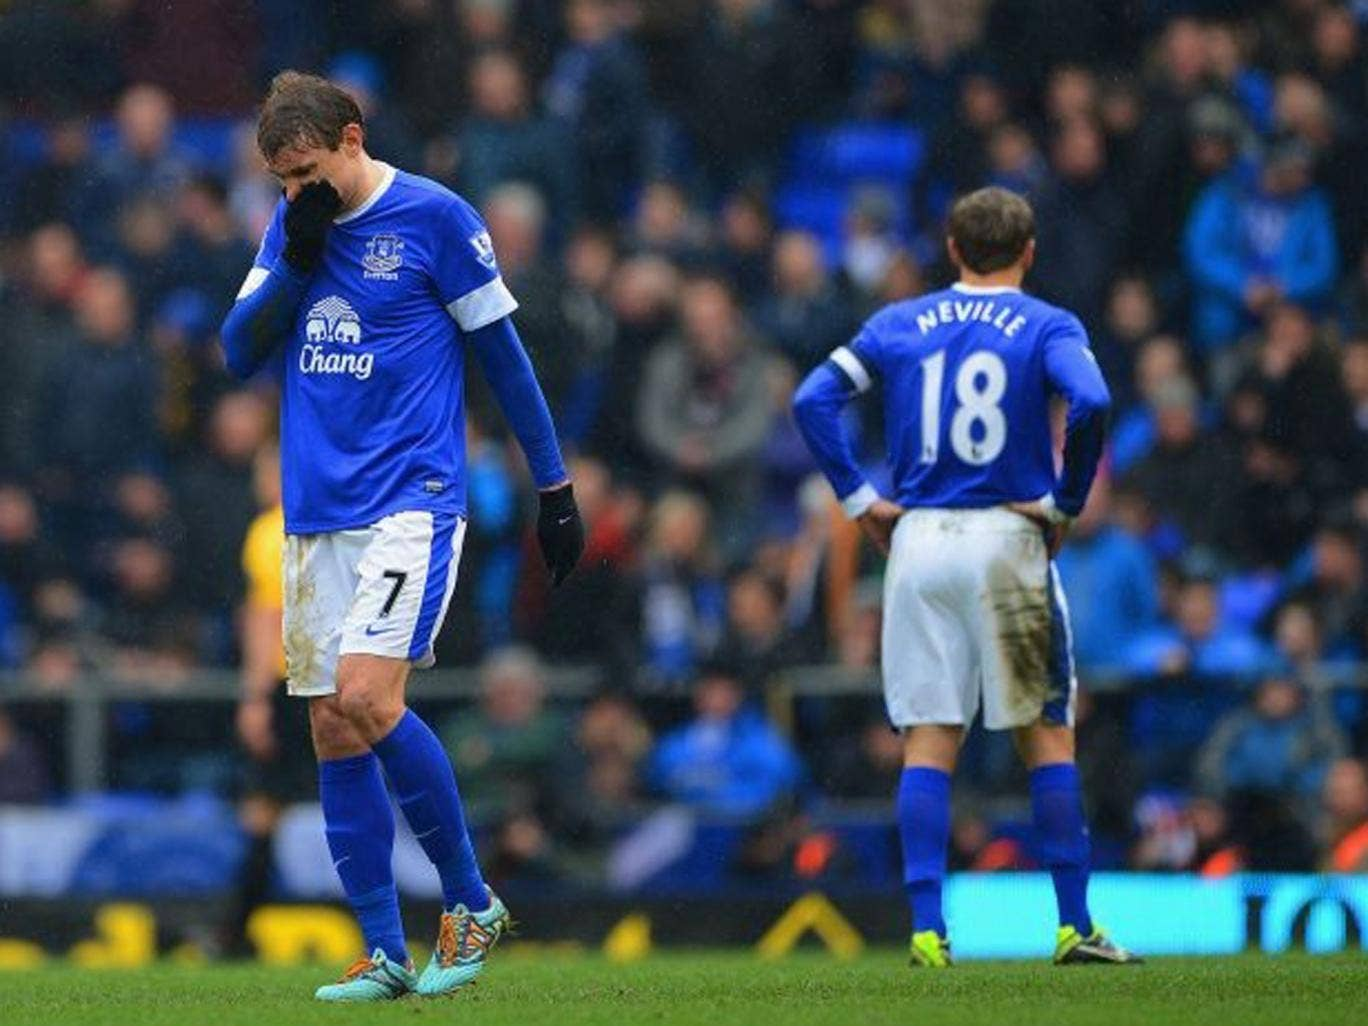 Nikica Jelavic (left) and Phil Neville during Everton's 3-0 defeat to Wigan